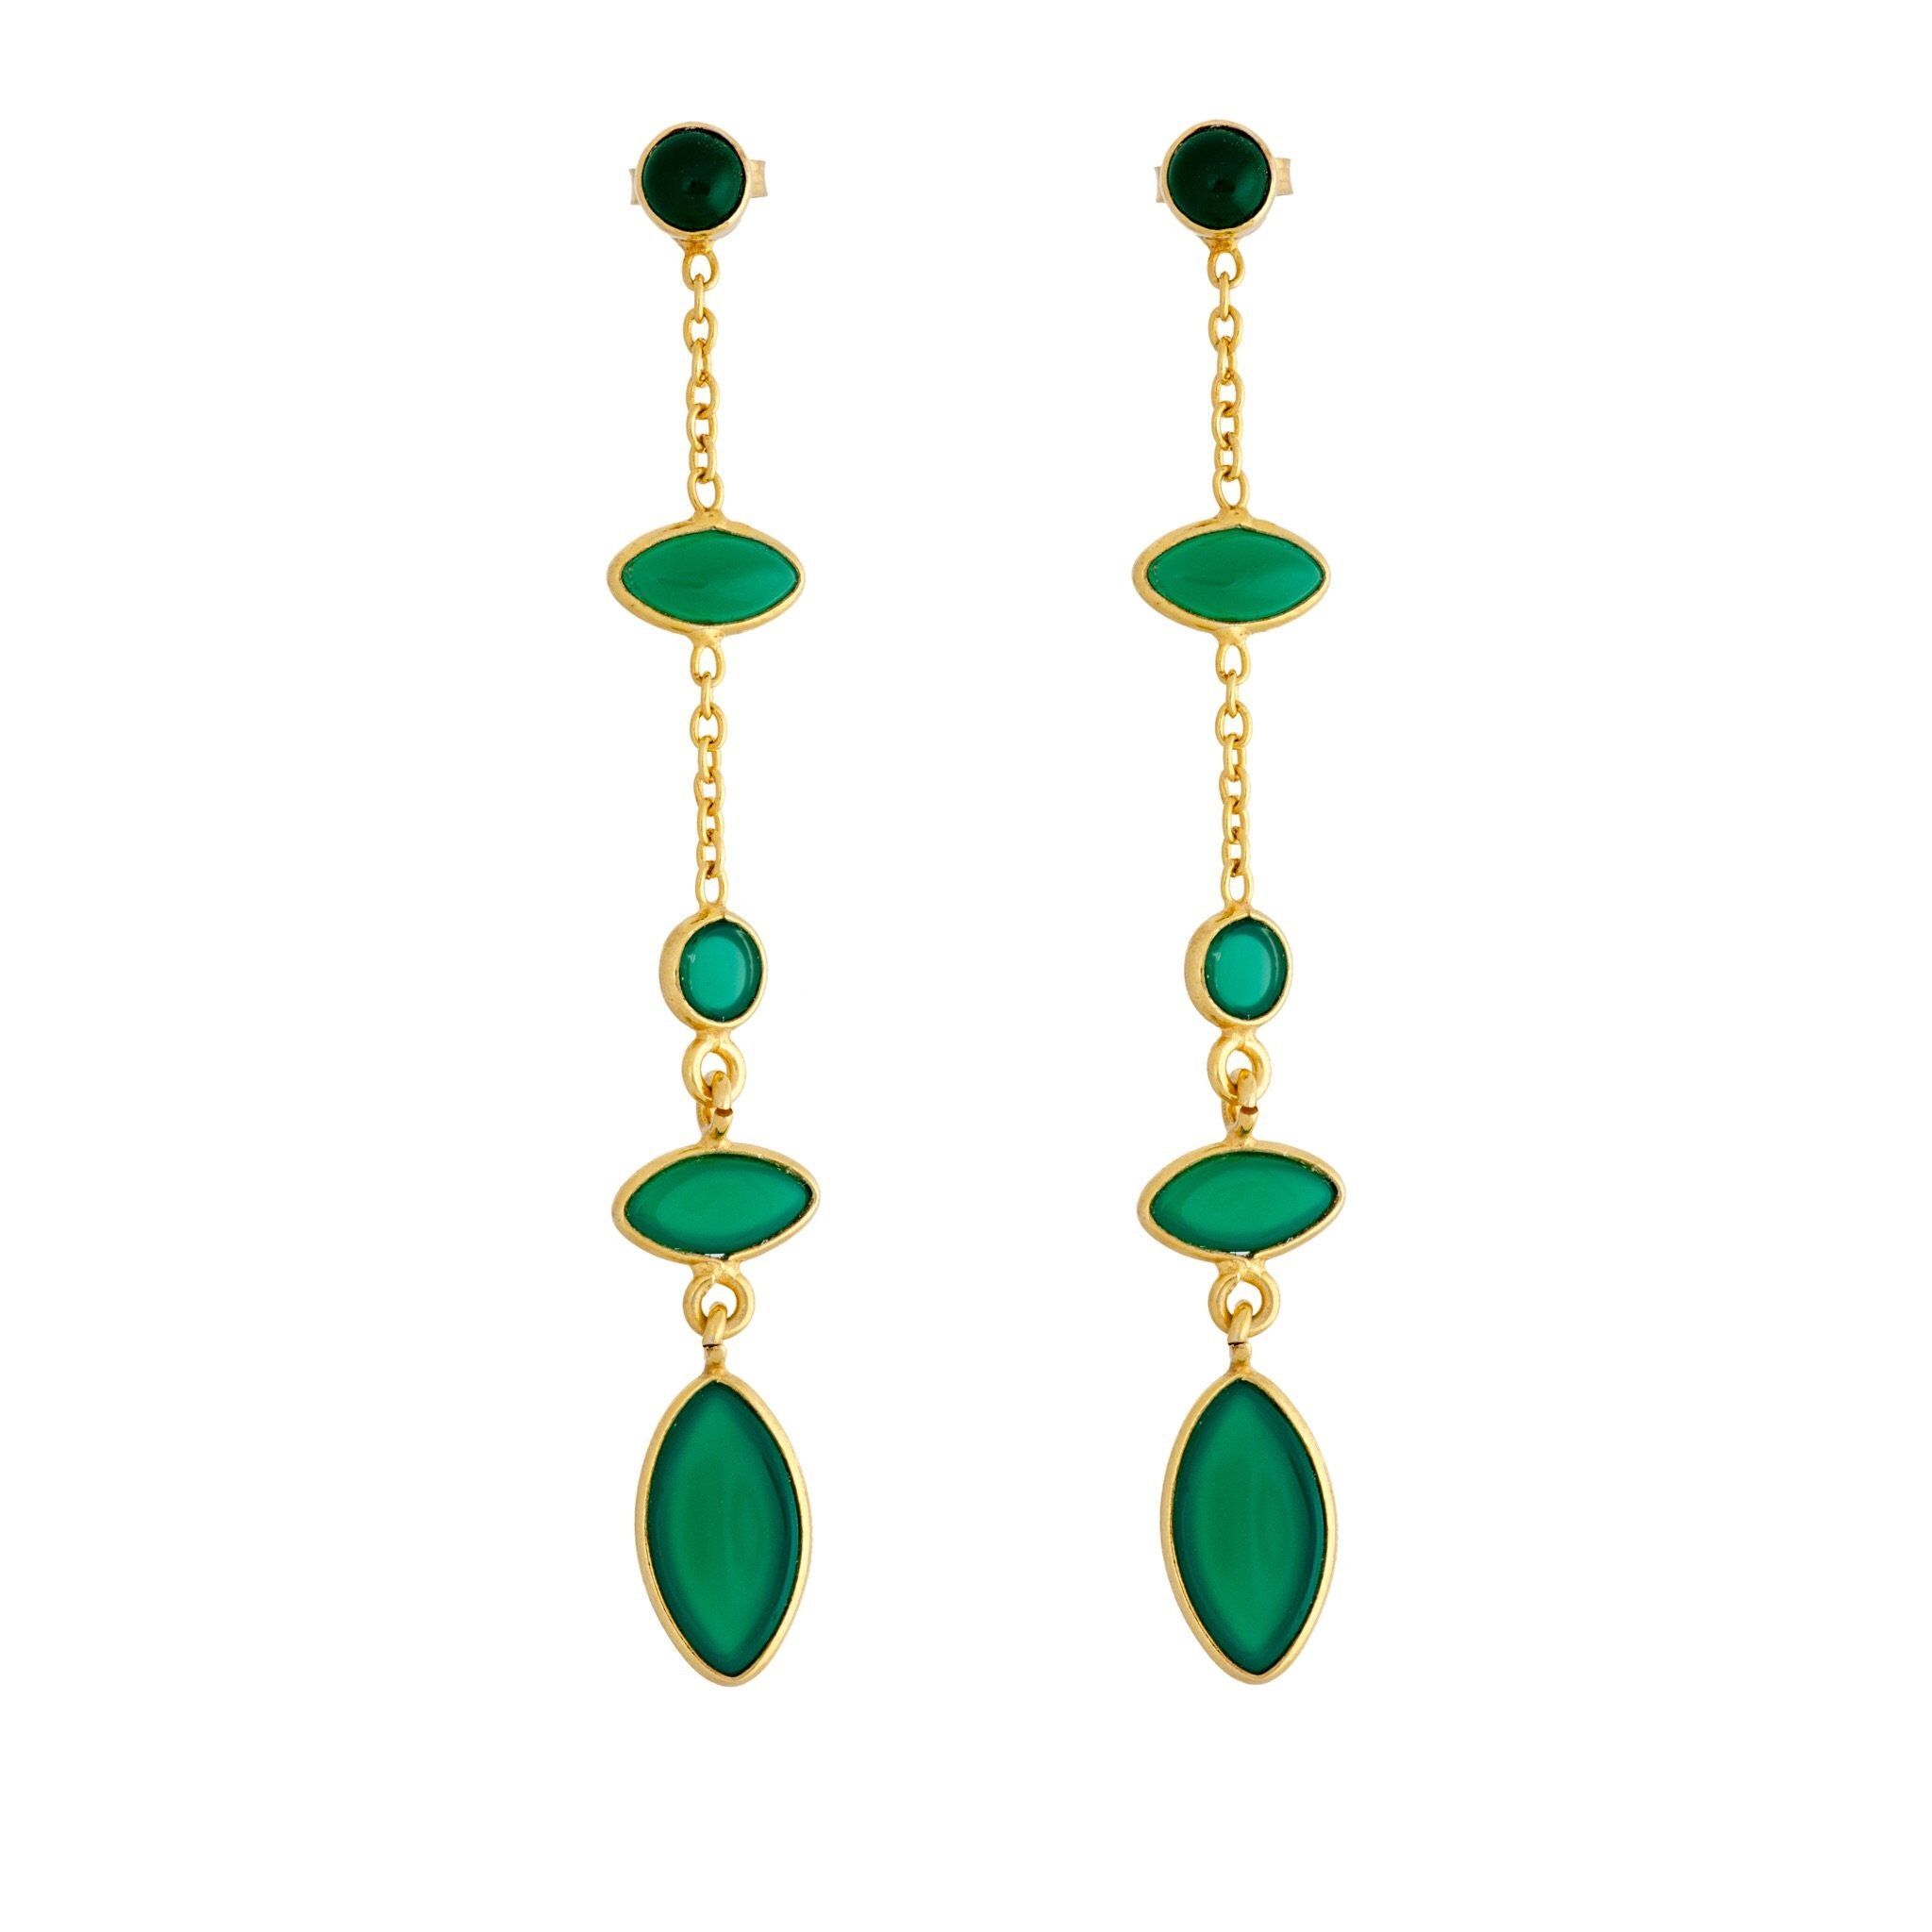 TA green onyx earrings